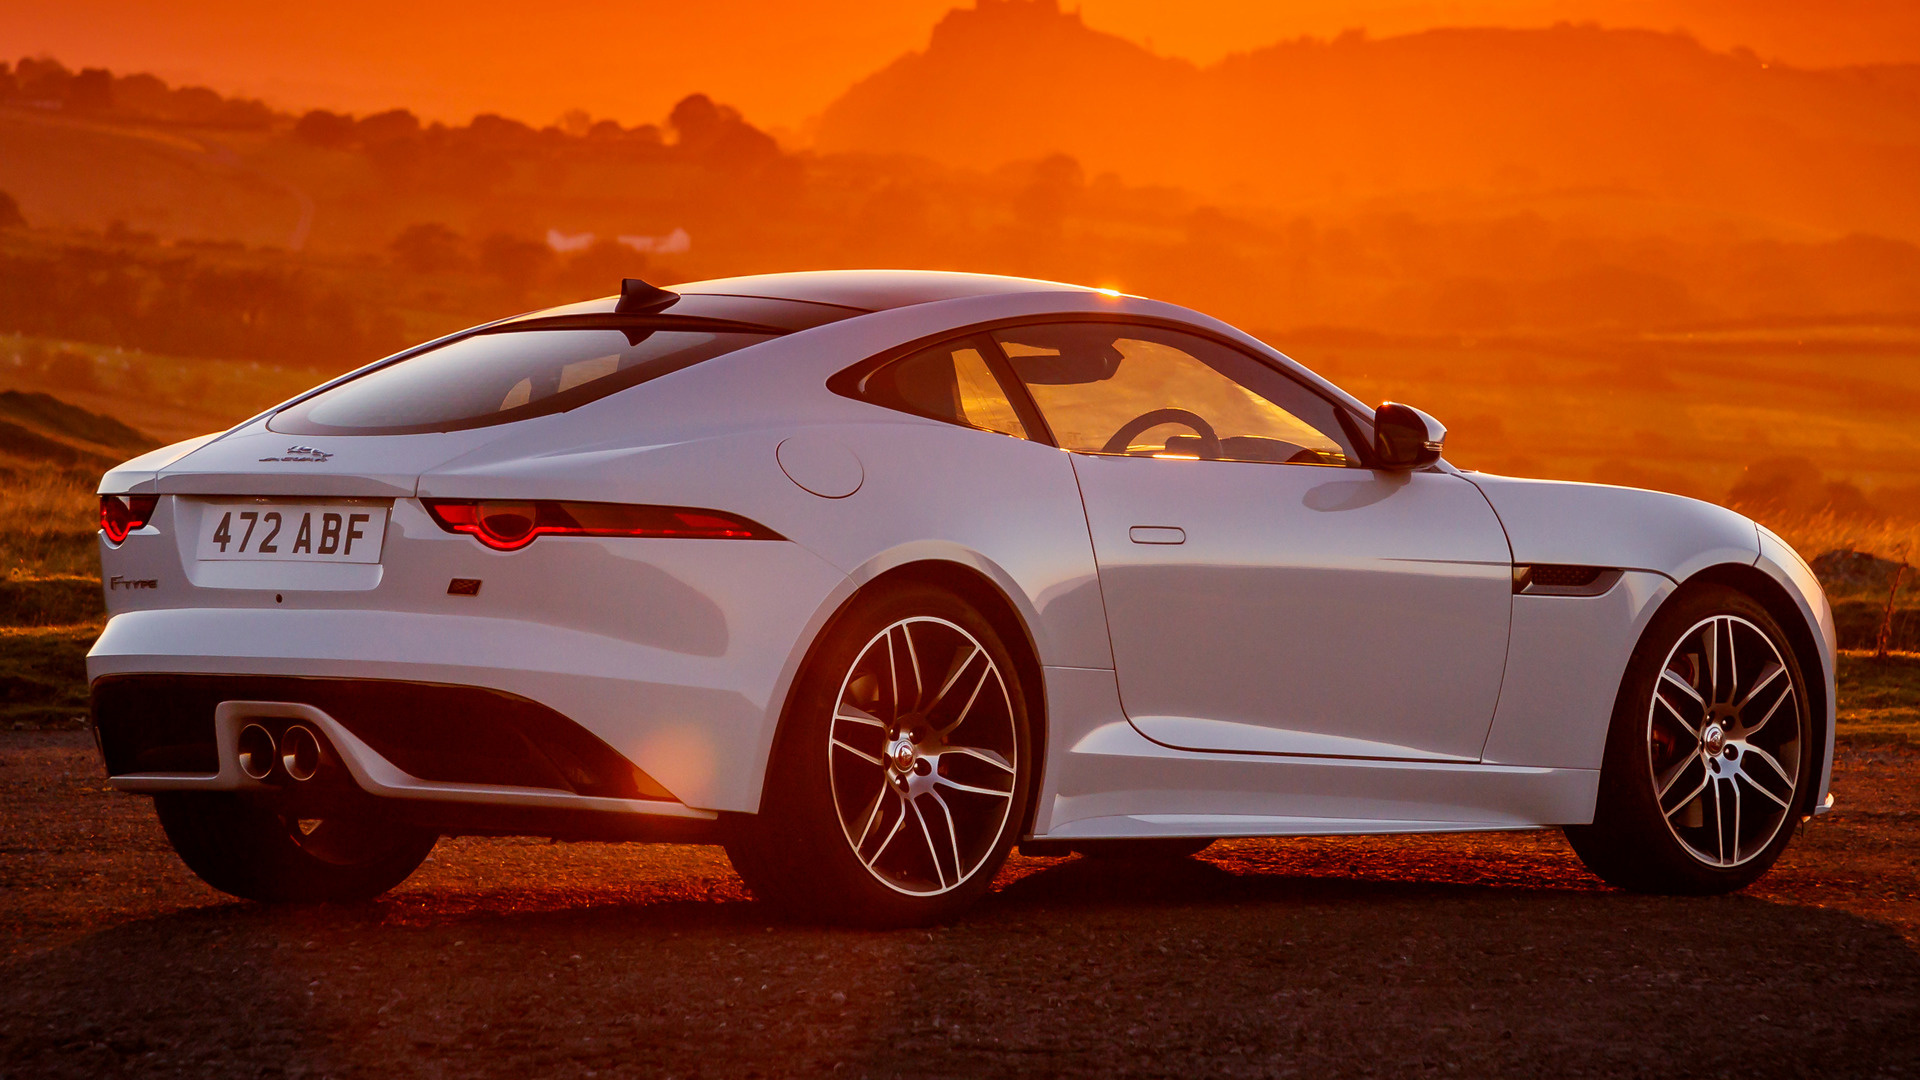 Jaguar F Type Coupe >> 2018 Jaguar F-Type Coupe Chequered Flag (UK) - Wallpapers ...